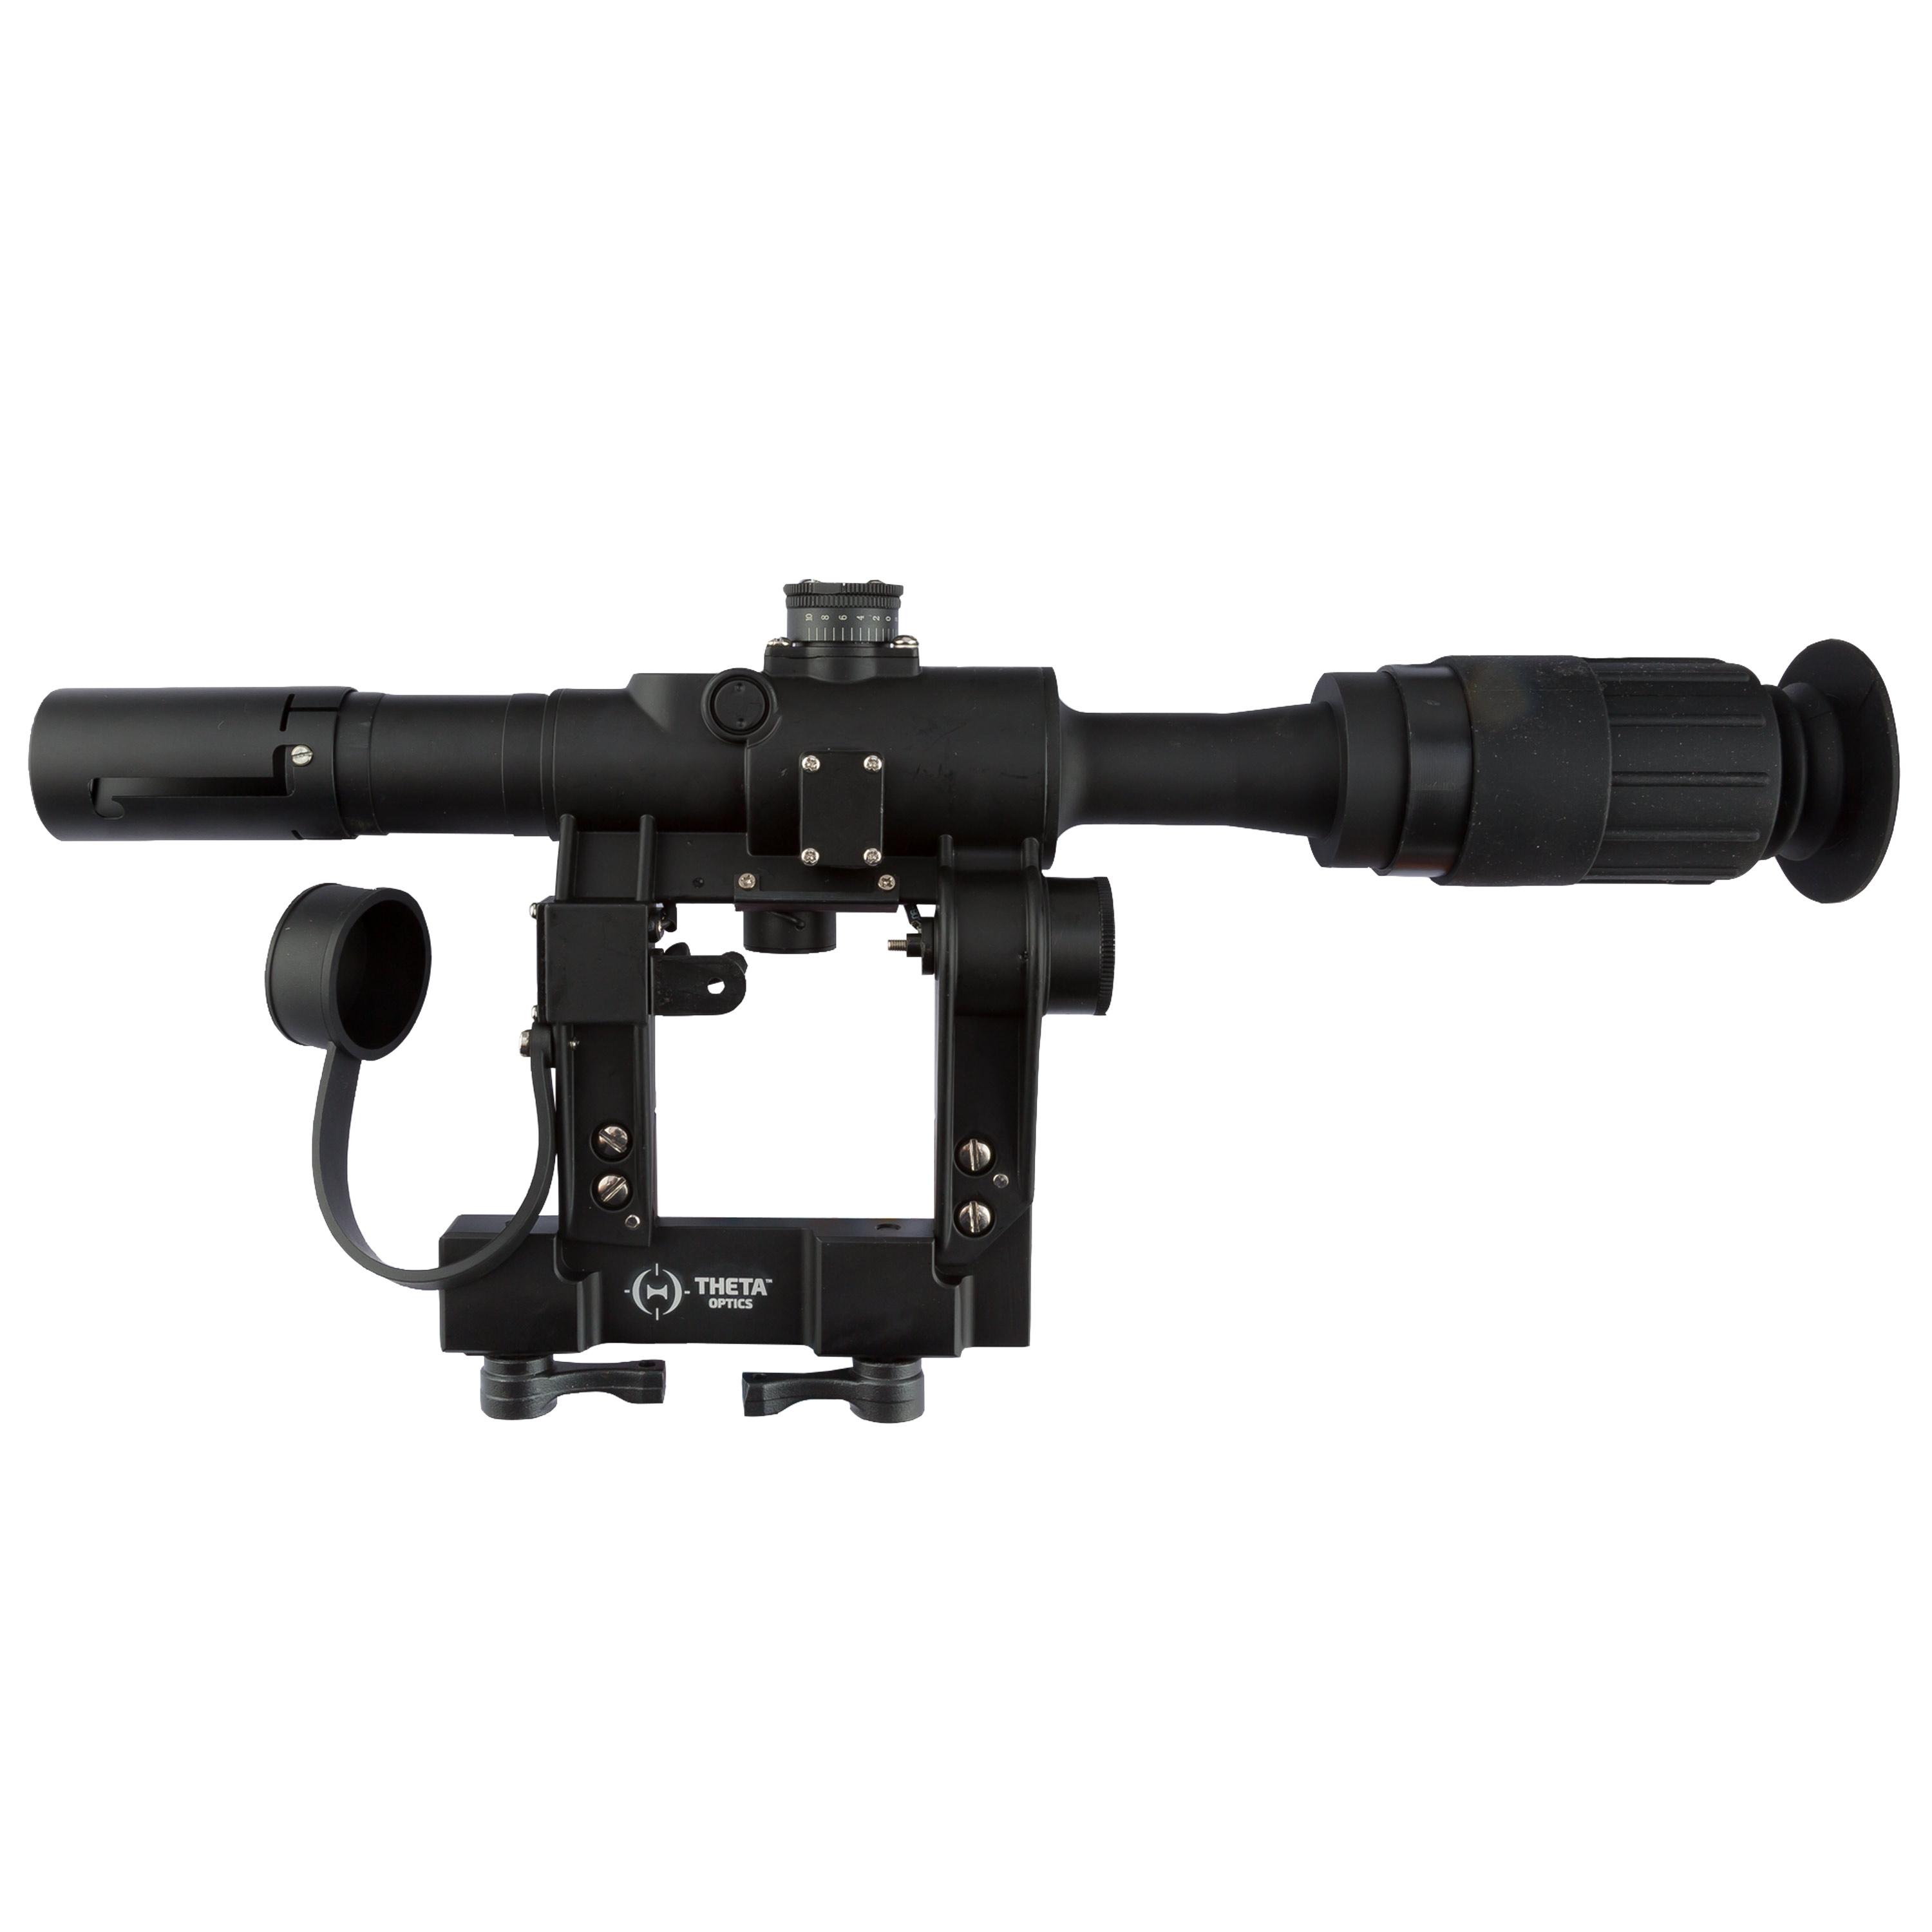 THO PSO-1 Scope with AK Mount black